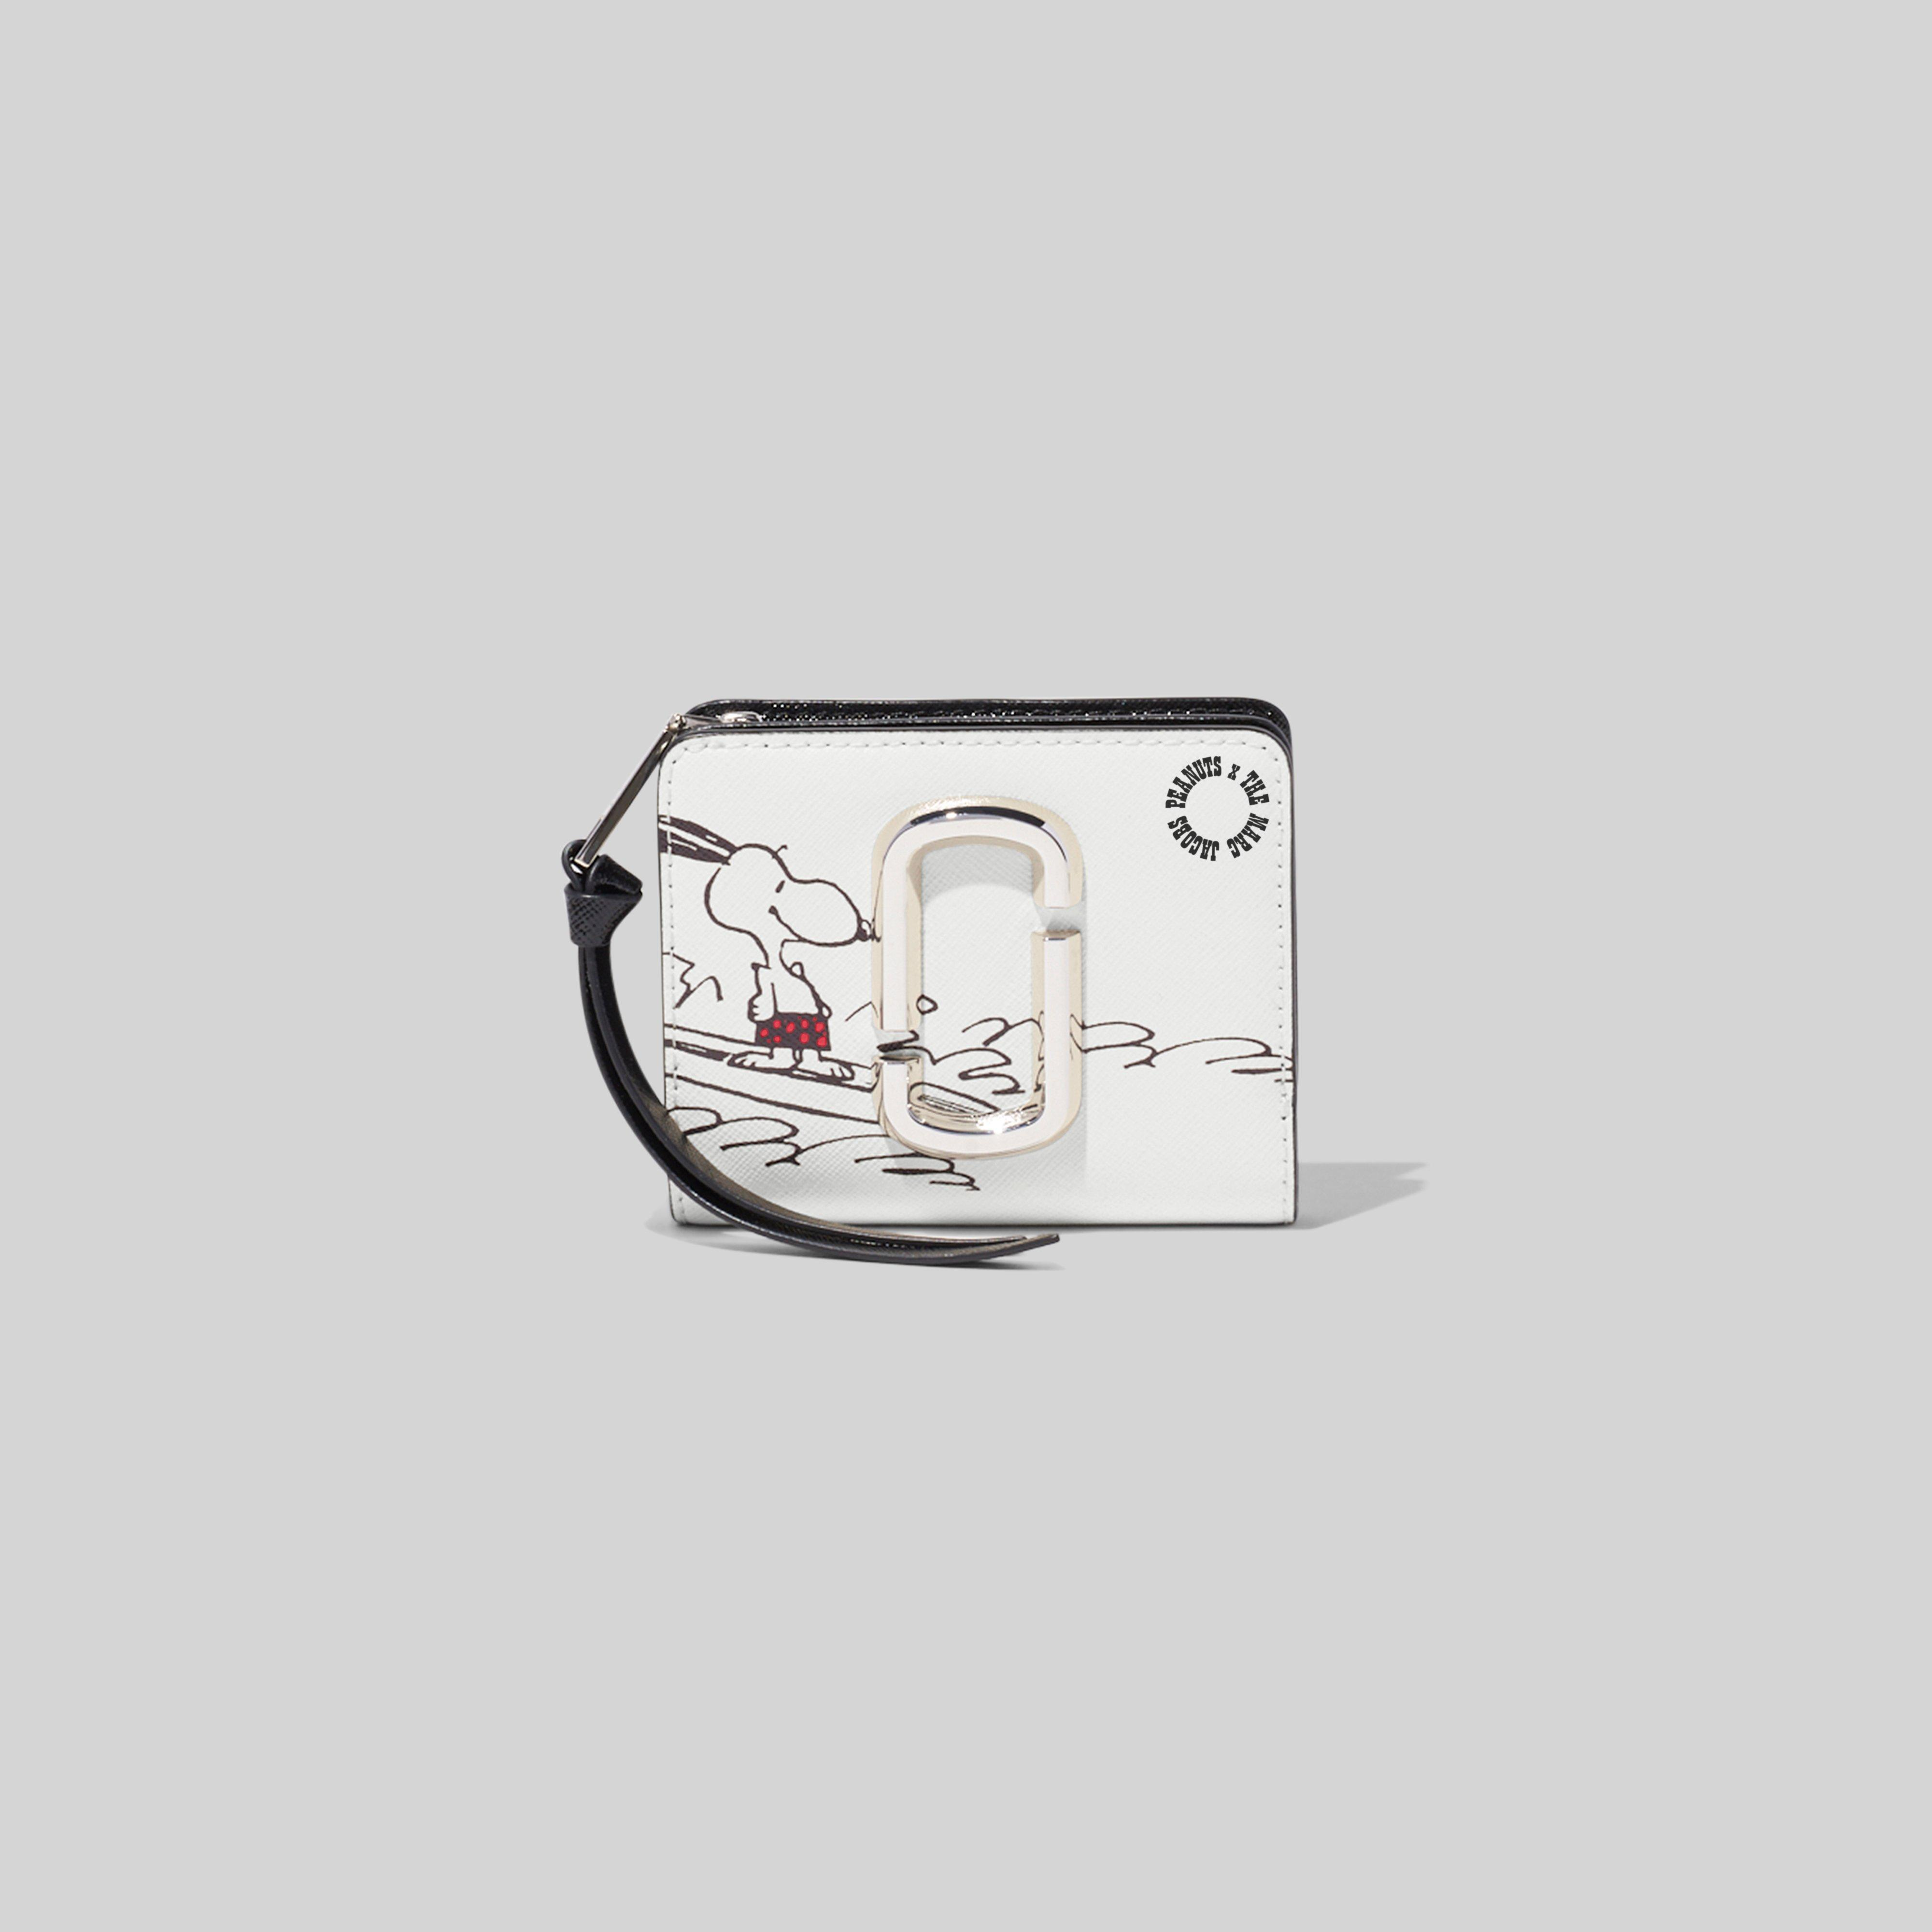 MARC JACOBS Peanuts x Marc Jacobs The Snapshot Mini Compact Wallet